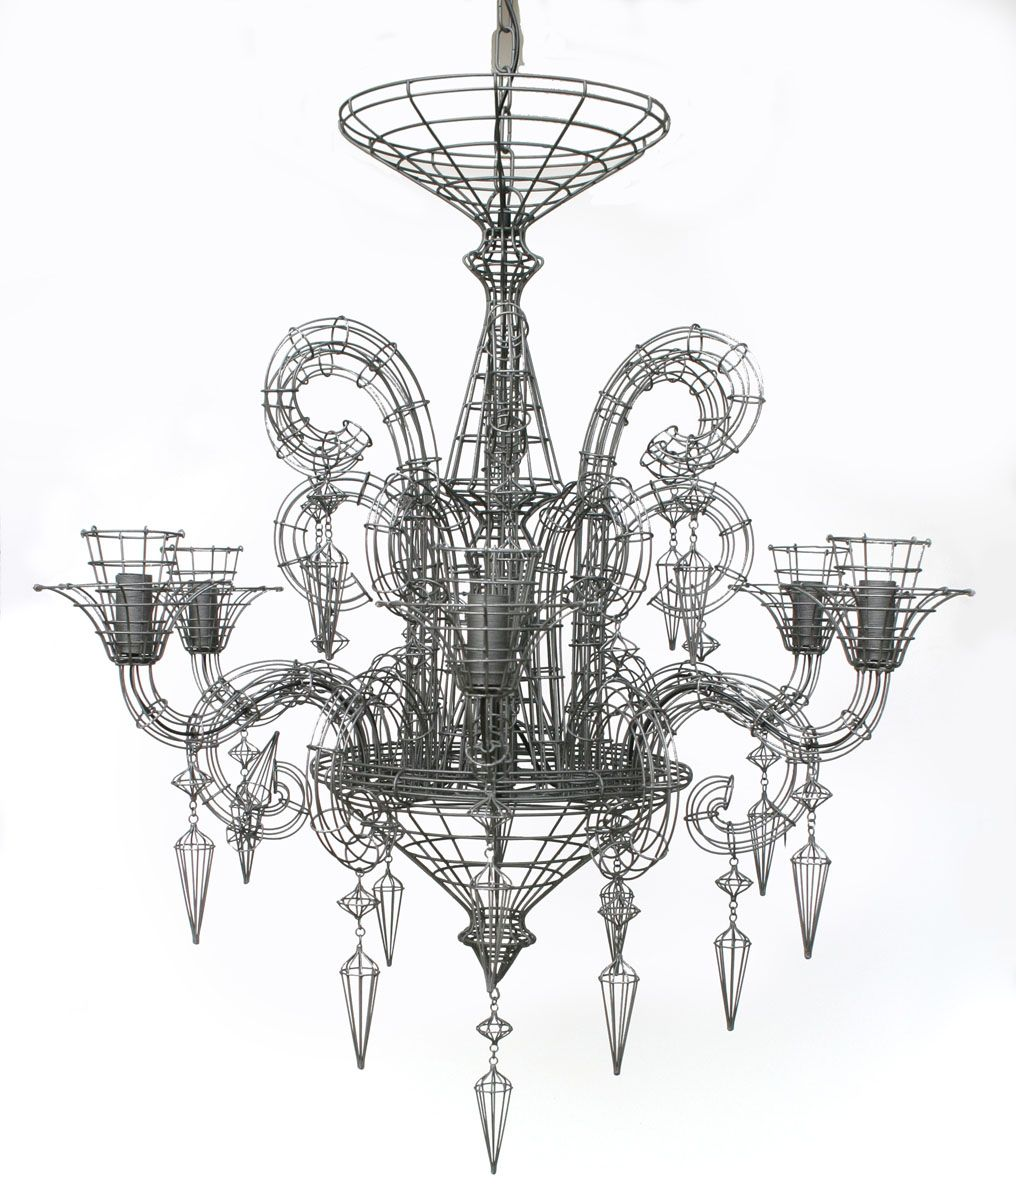 Shades of gray home and art zsazsa bellagio like no other biju grand french wire chandelier pewter l 110 h x 100 diameter xl 135 h x 125 diameter aloadofball Gallery